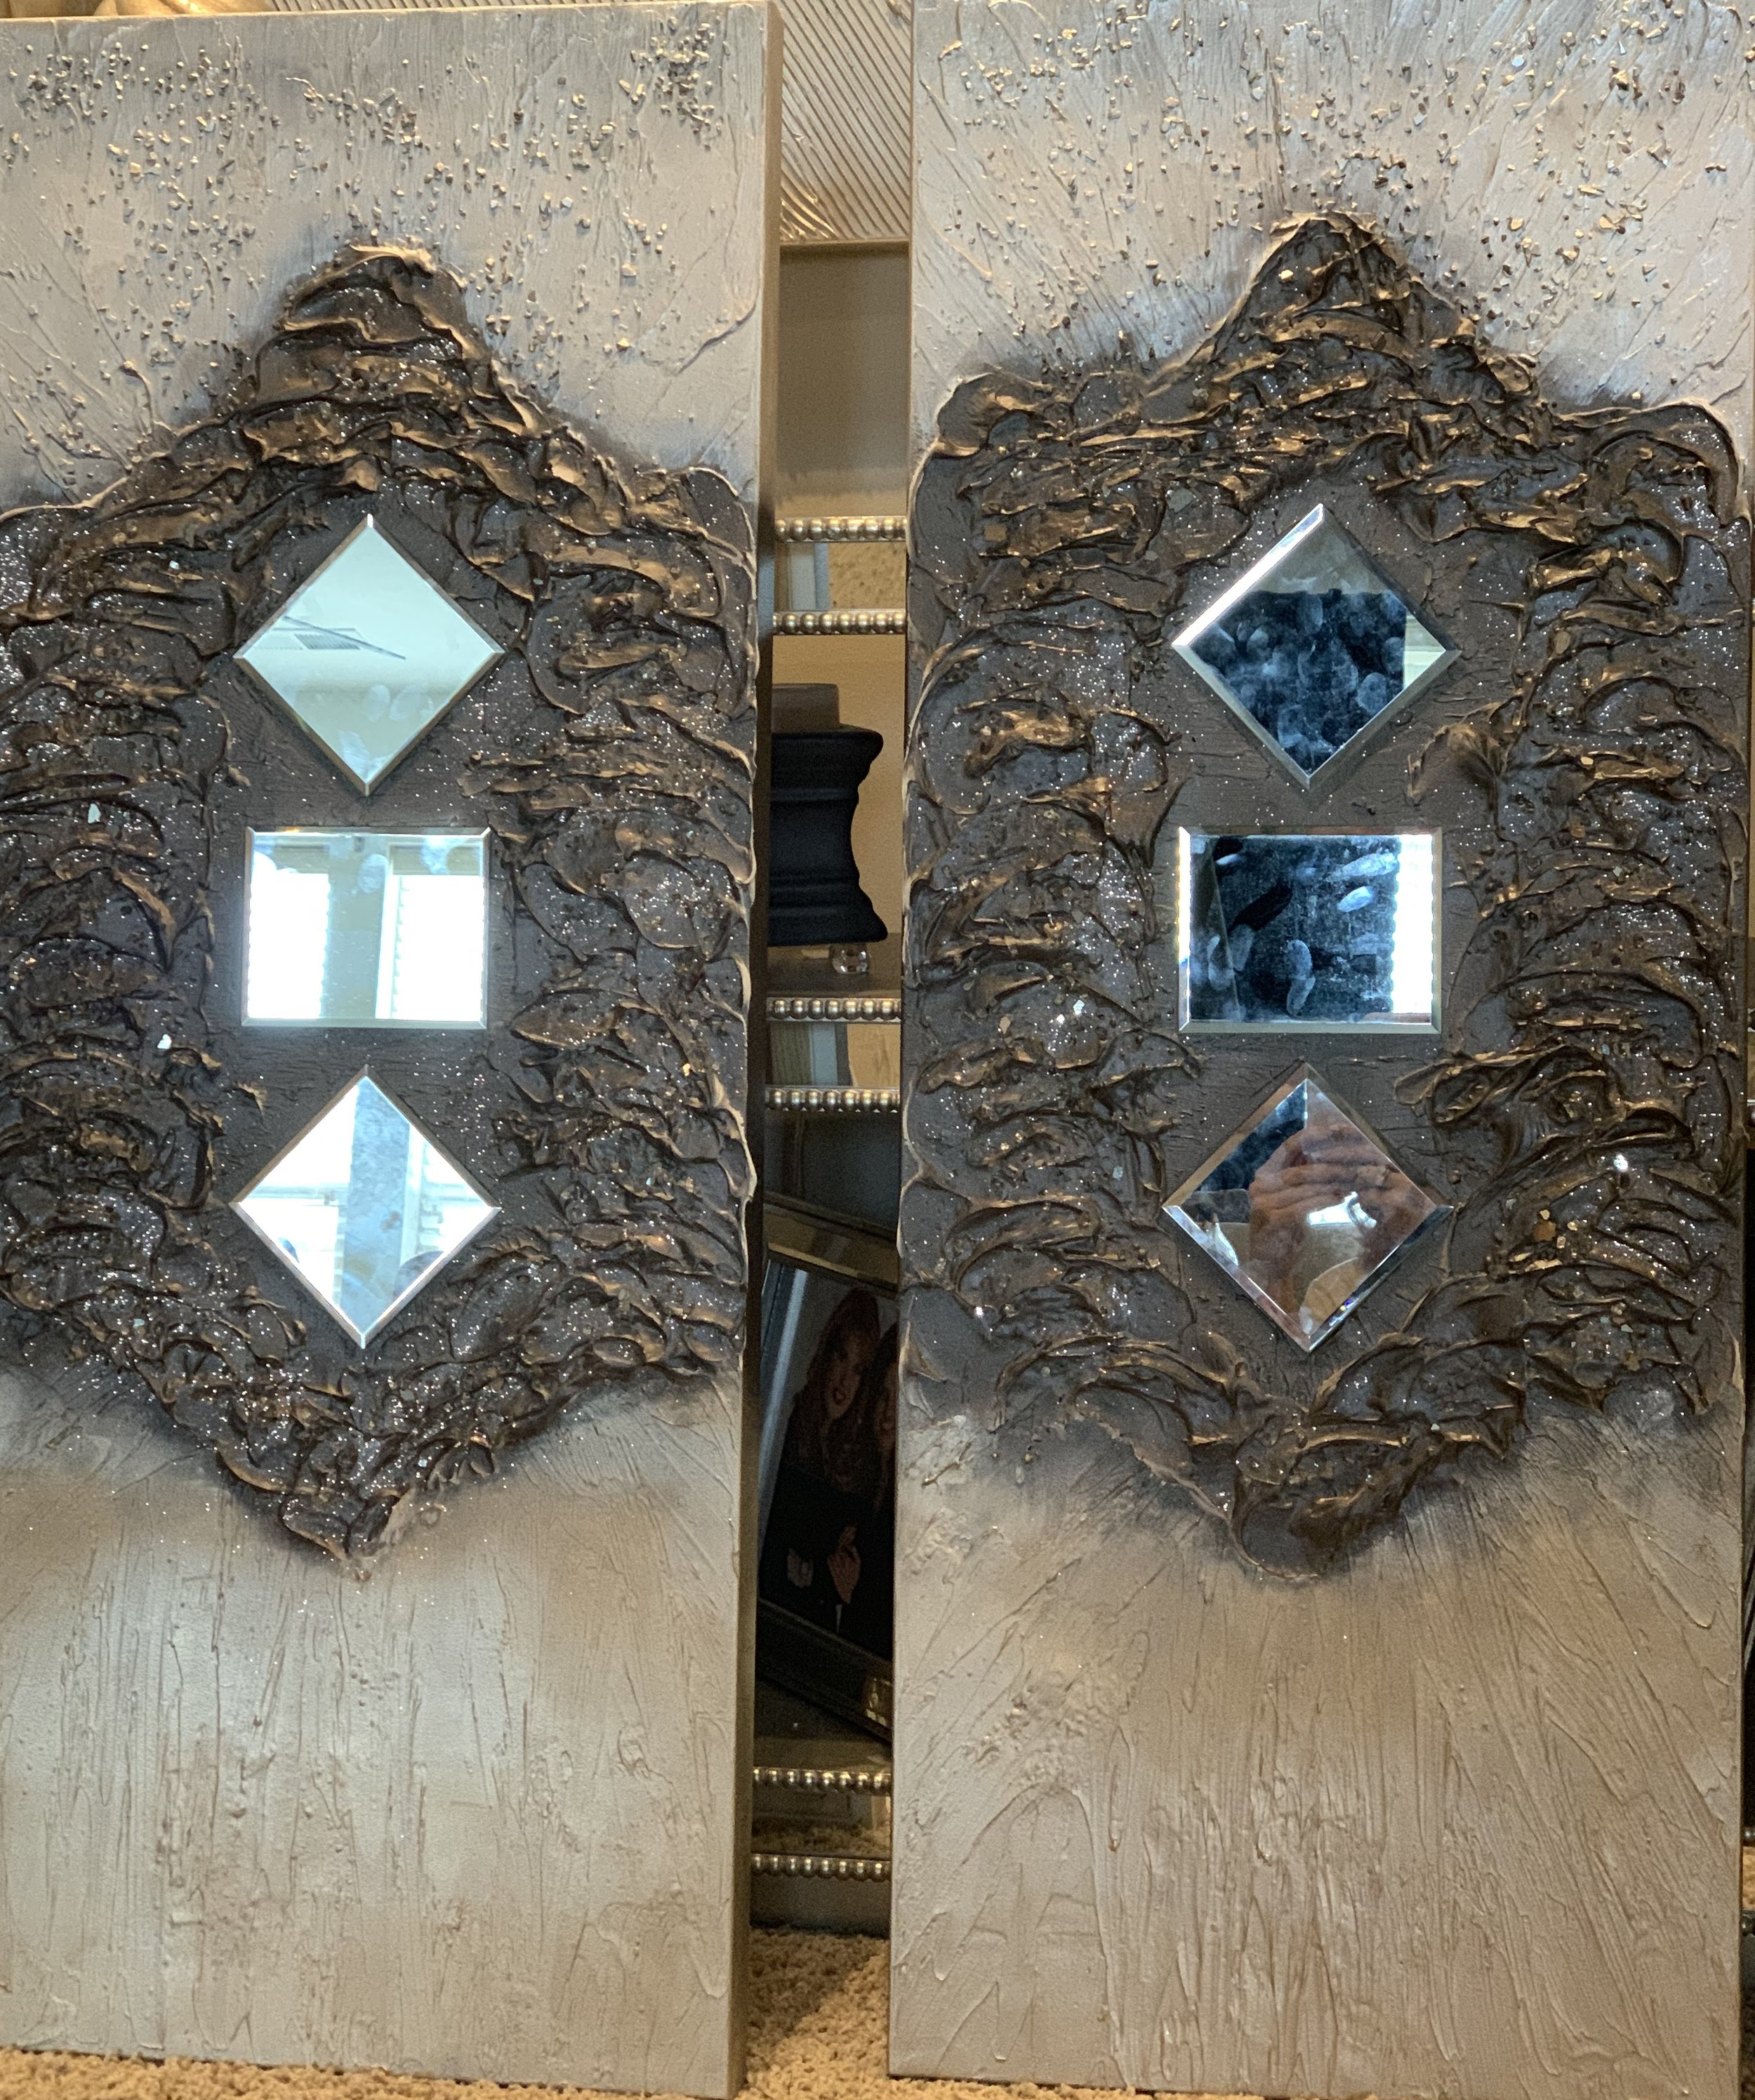 'Charisma' is shown as a pair of 16x40 with layers of texture. the beveled mirrors are on a backdrop of oil rubbed bronze with a touch of sparkle. The top texture is silver tones and the bottom is champagne.